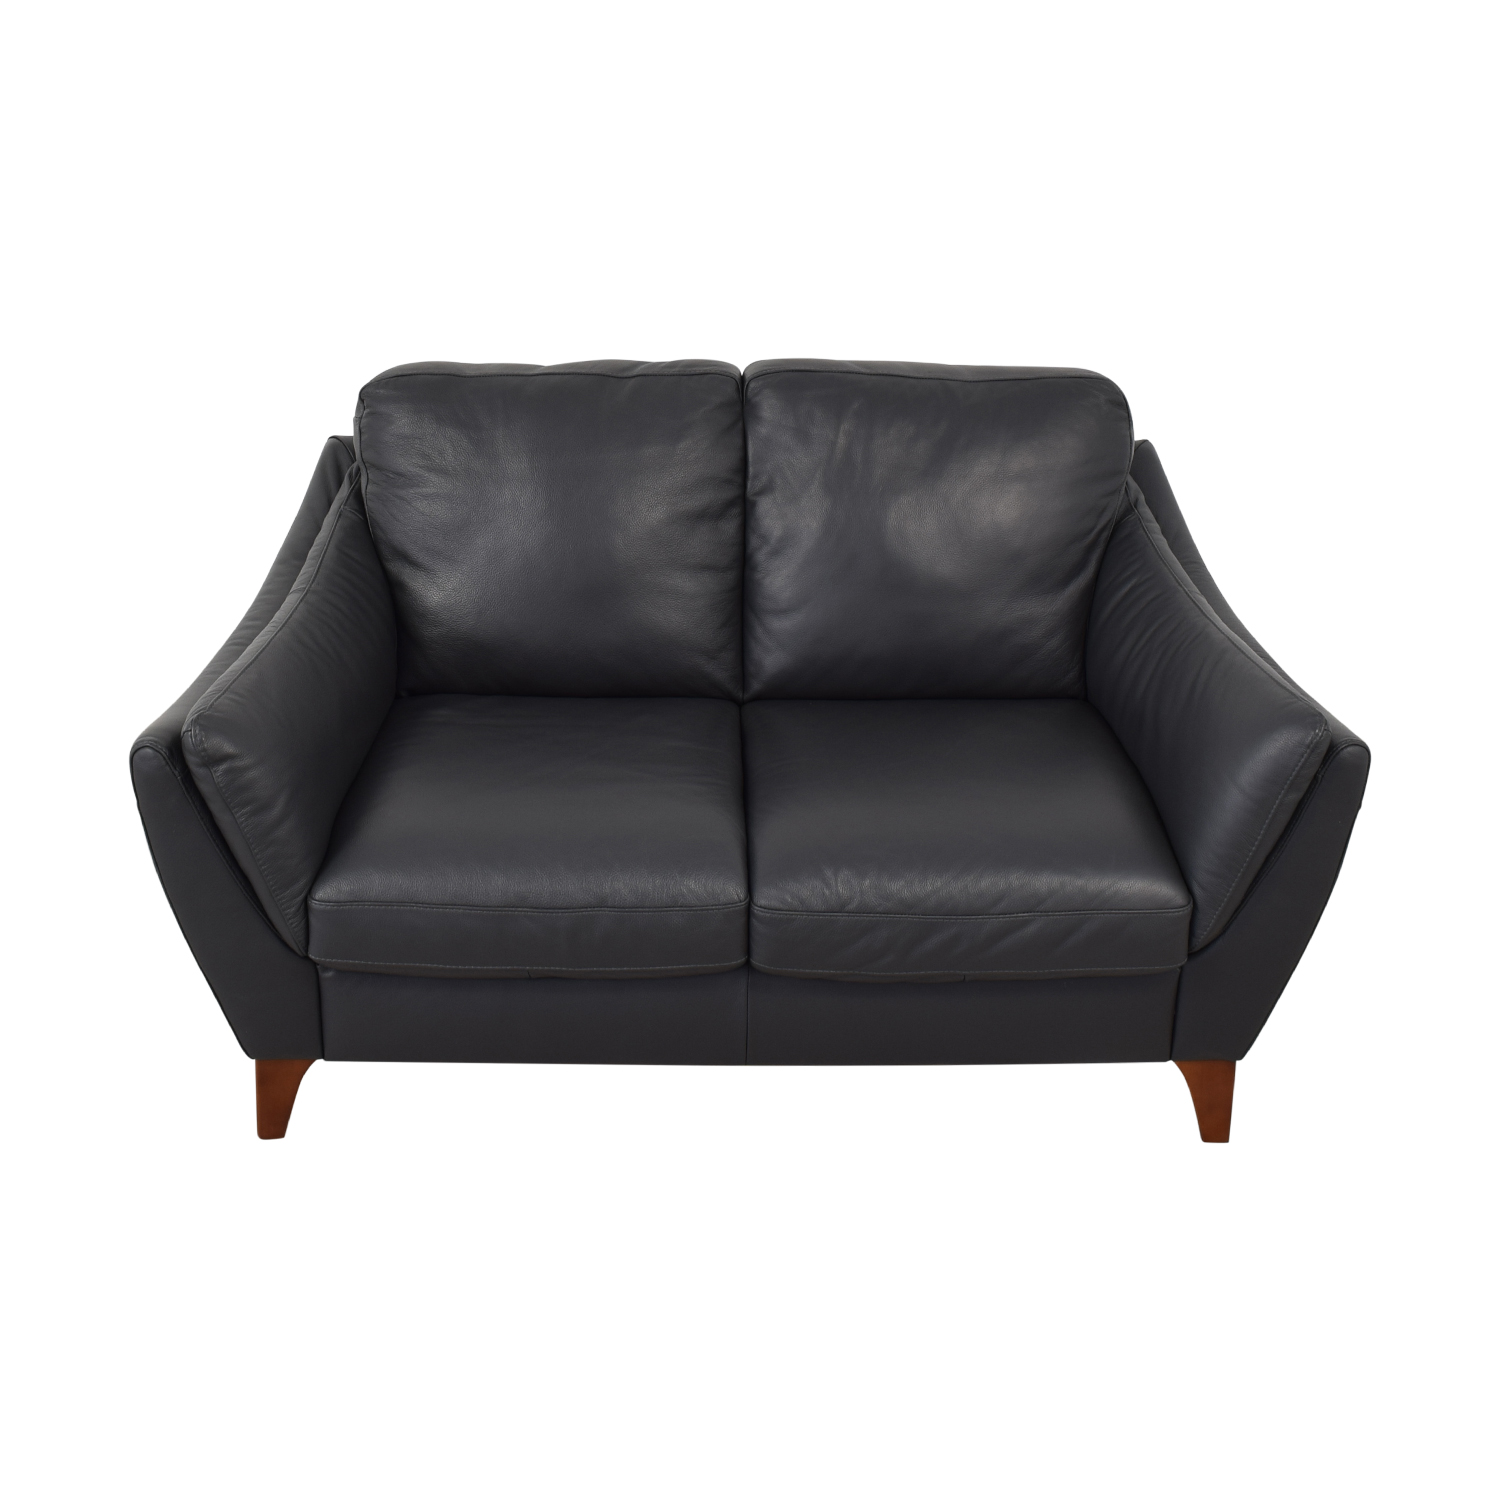 Remarkable 76 Off Raymour Flanigan Raymour Flanigan Greccio Leather Loveseat Sofas Dailytribune Chair Design For Home Dailytribuneorg